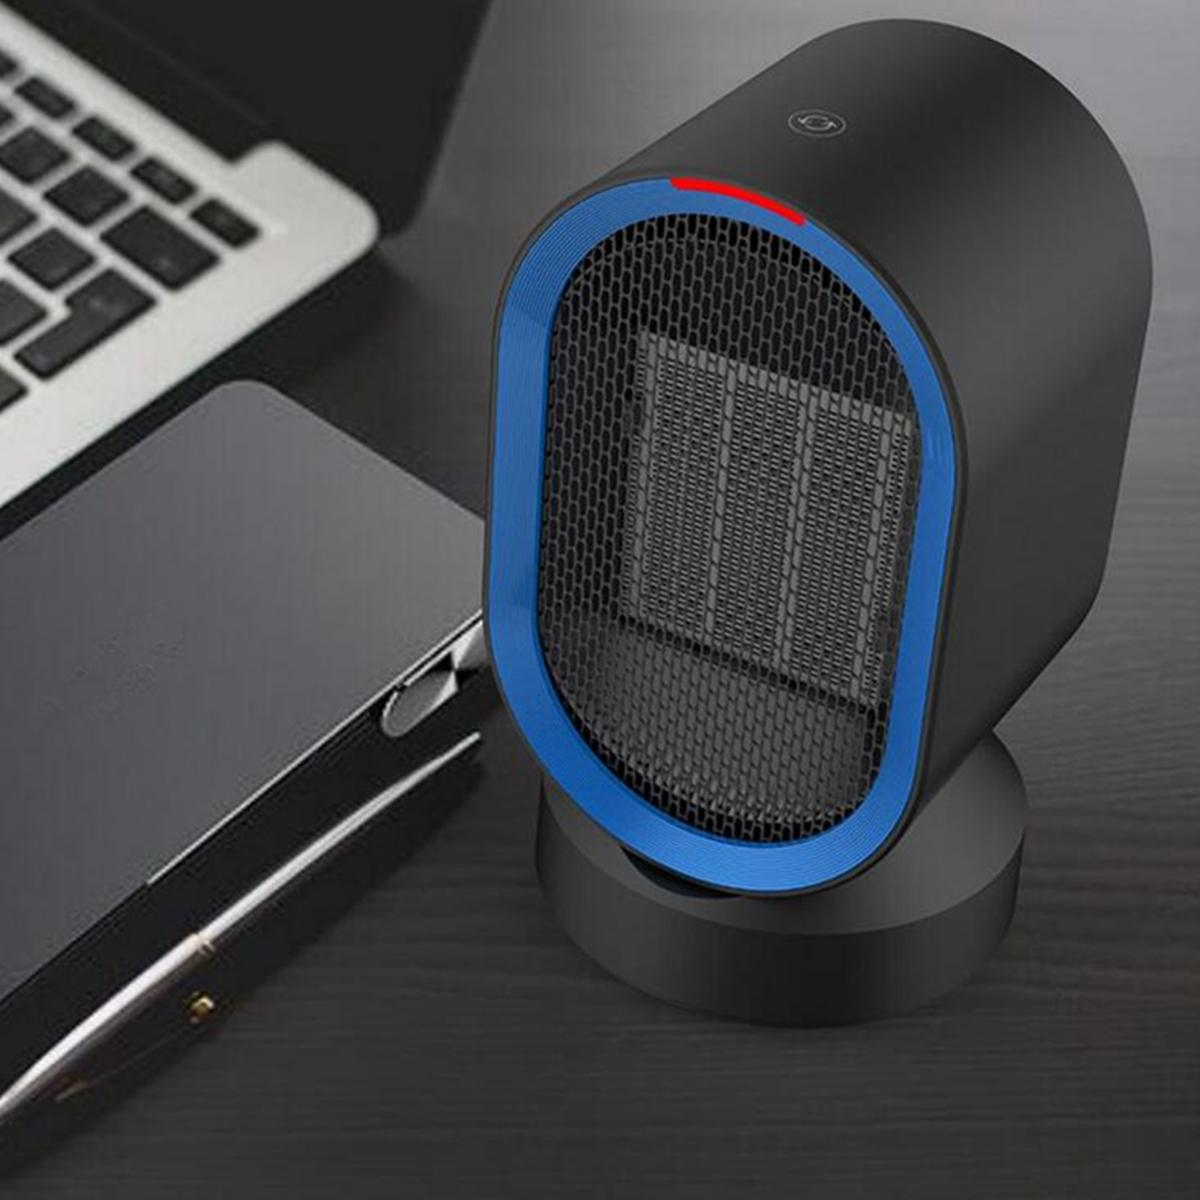 600W Electric Wall Heater Mini Portable Indoor Heating Air Heating Warmer Mini Heaters Silent Office Household Appliances Black